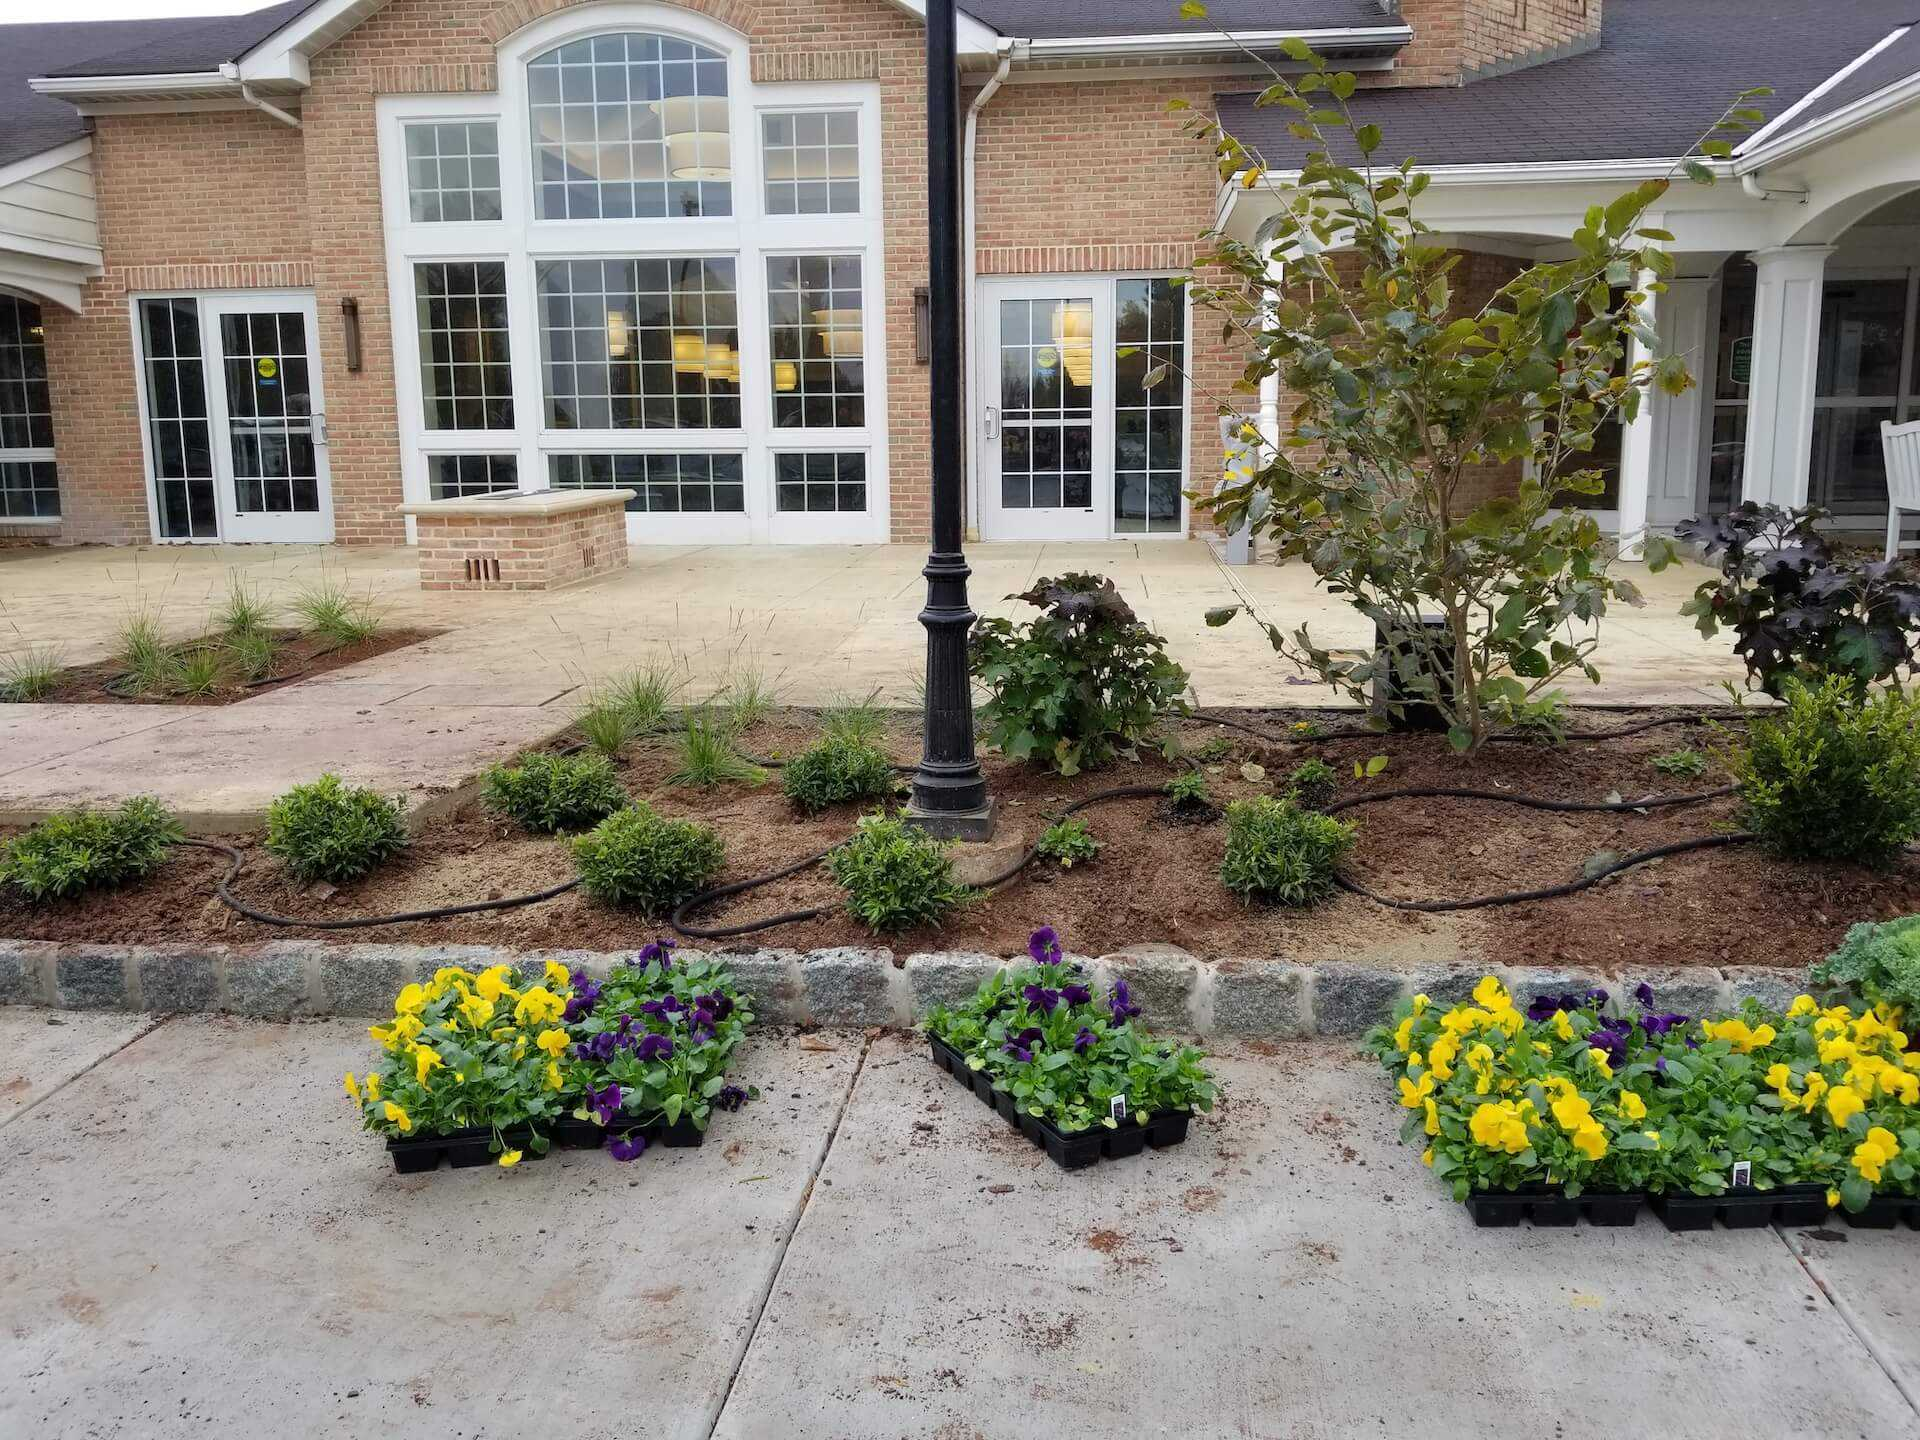 flower beds being irrigated next to patio area